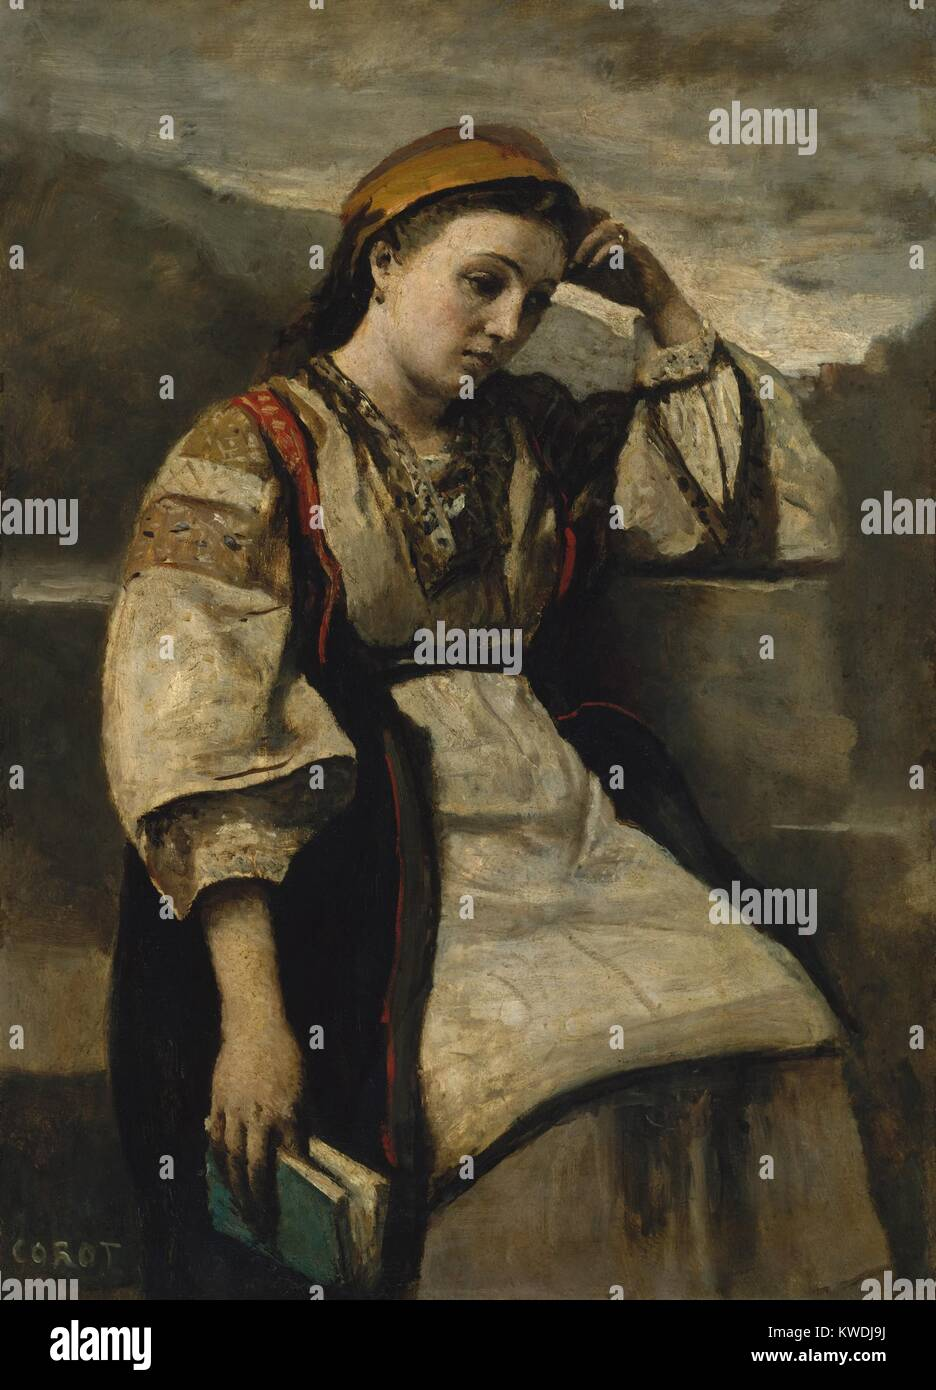 REVERIE, by Camille Corot, 1860-65, French painting, oil on wood. Corot posed working-class Parisian women in exotic - Stock Image